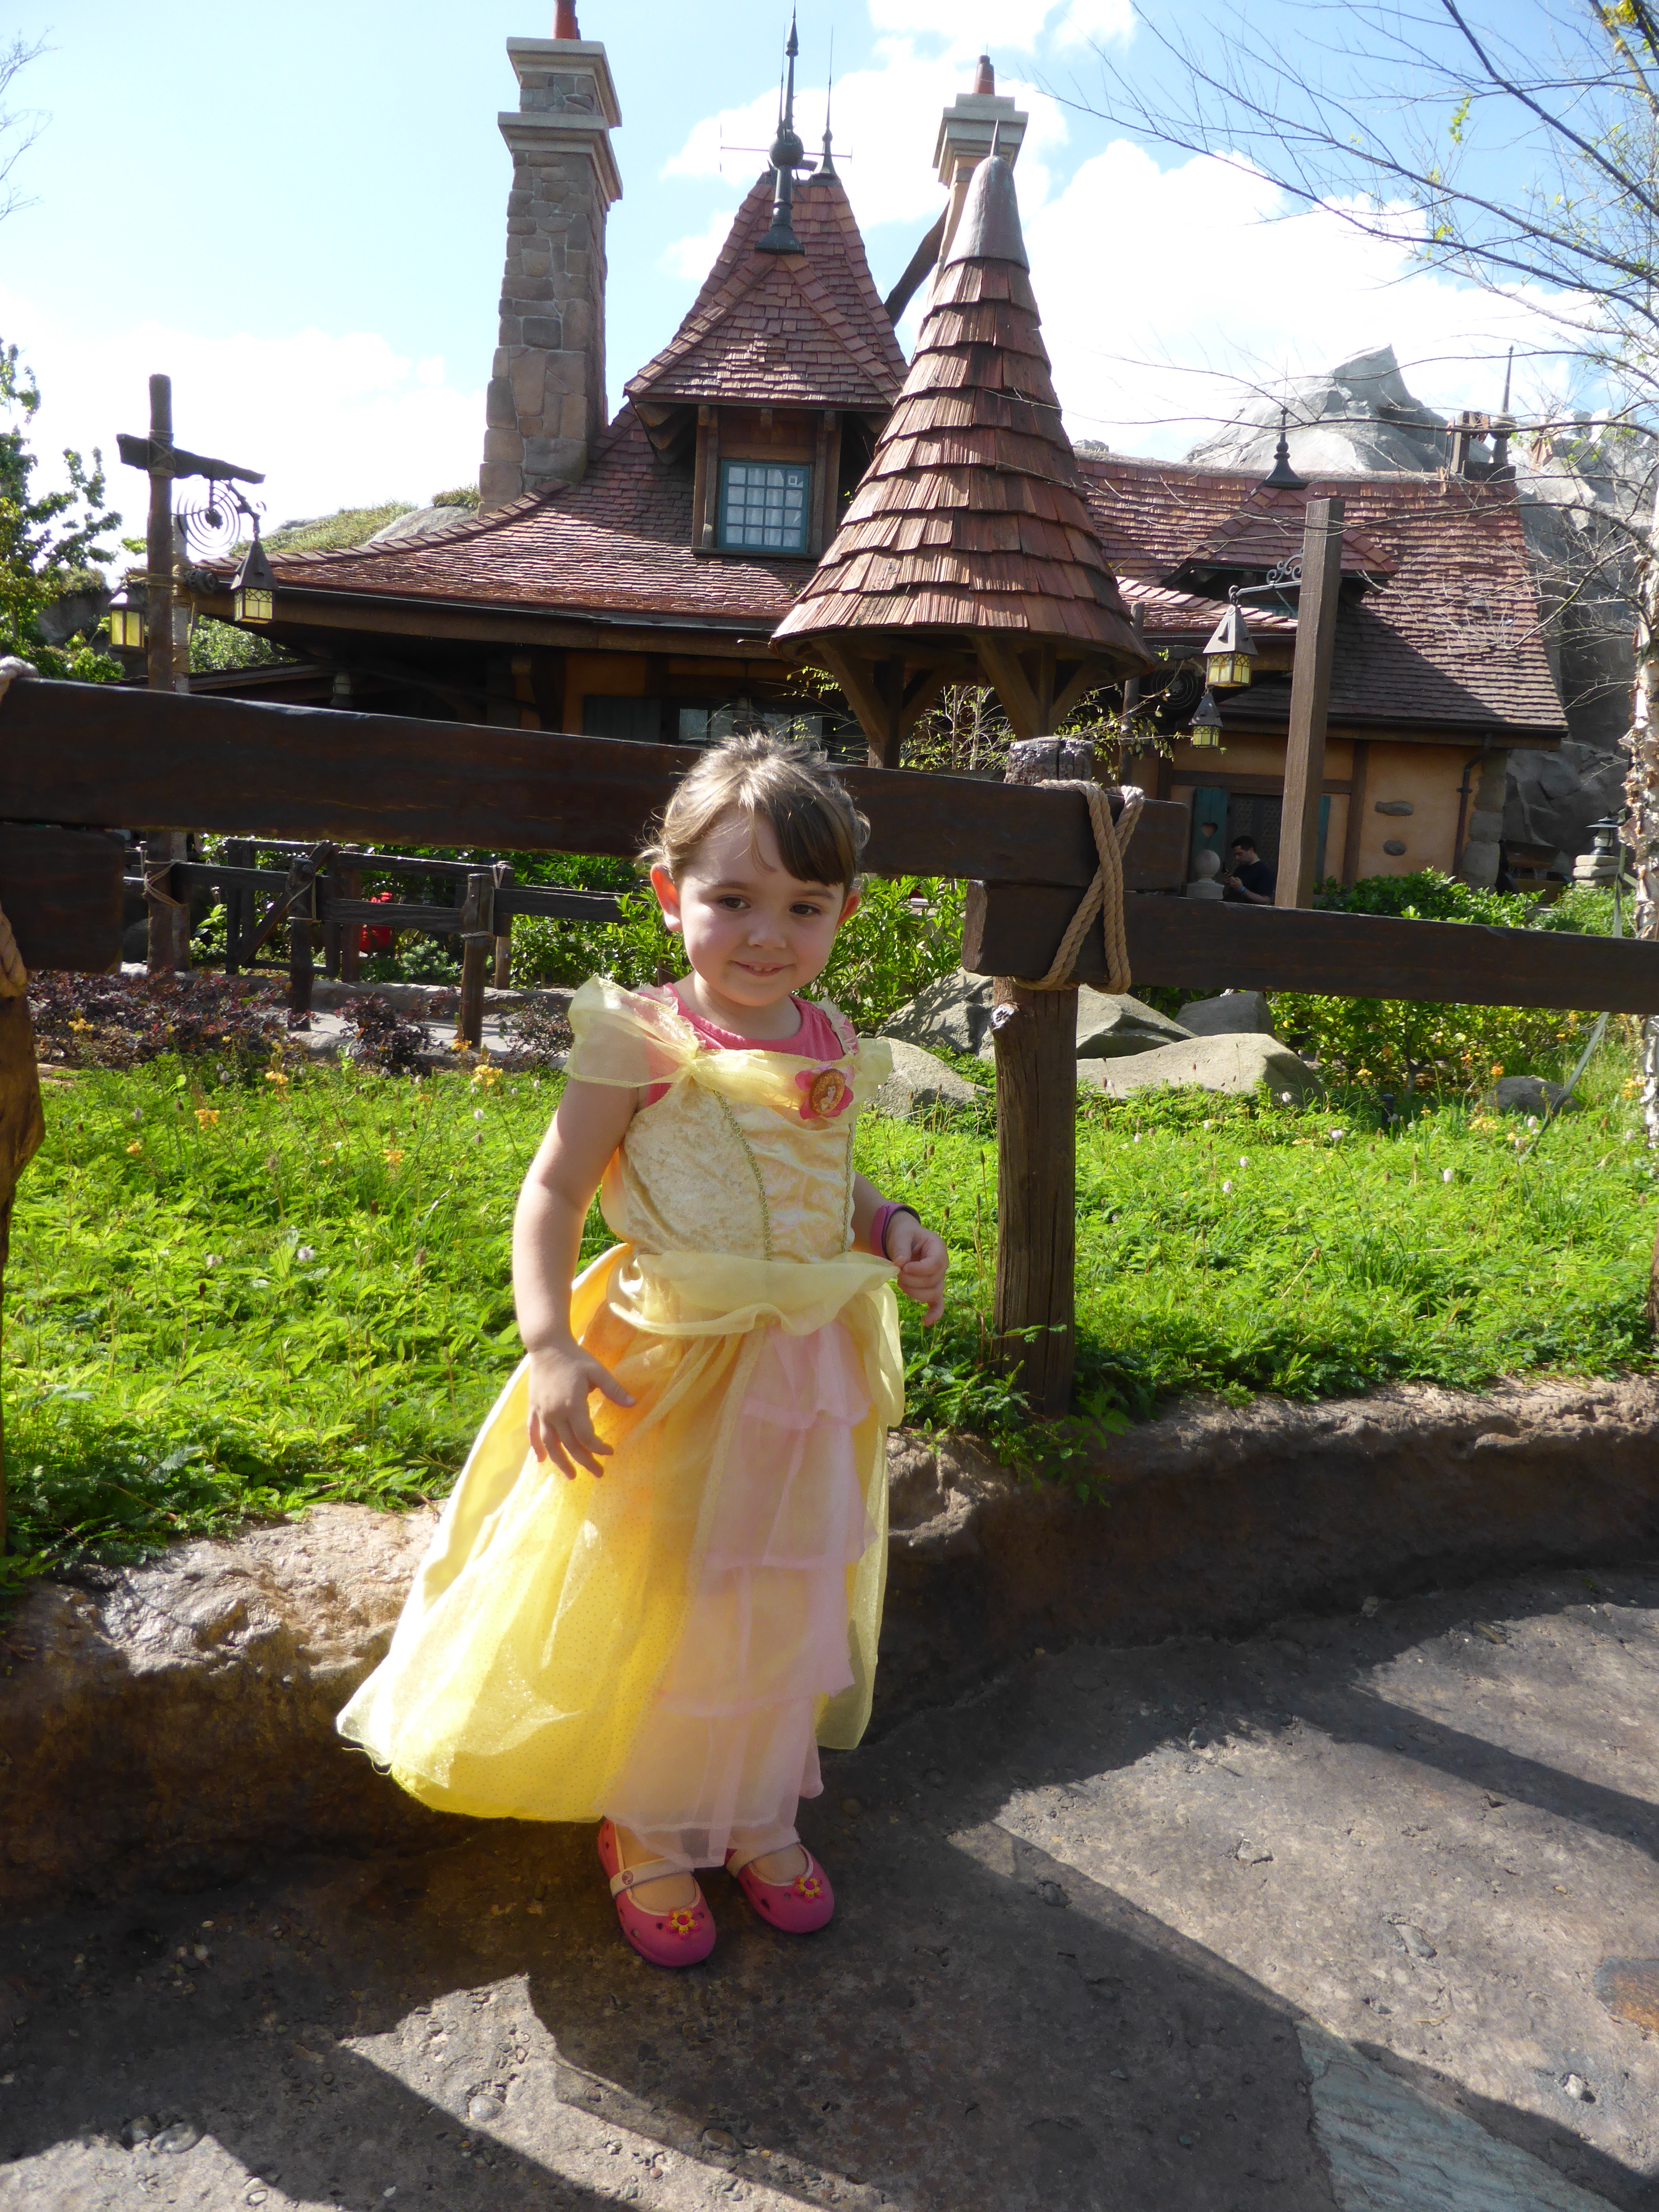 A Frugal Mom's Guide To Disney – 10 Ways To Save At Disney